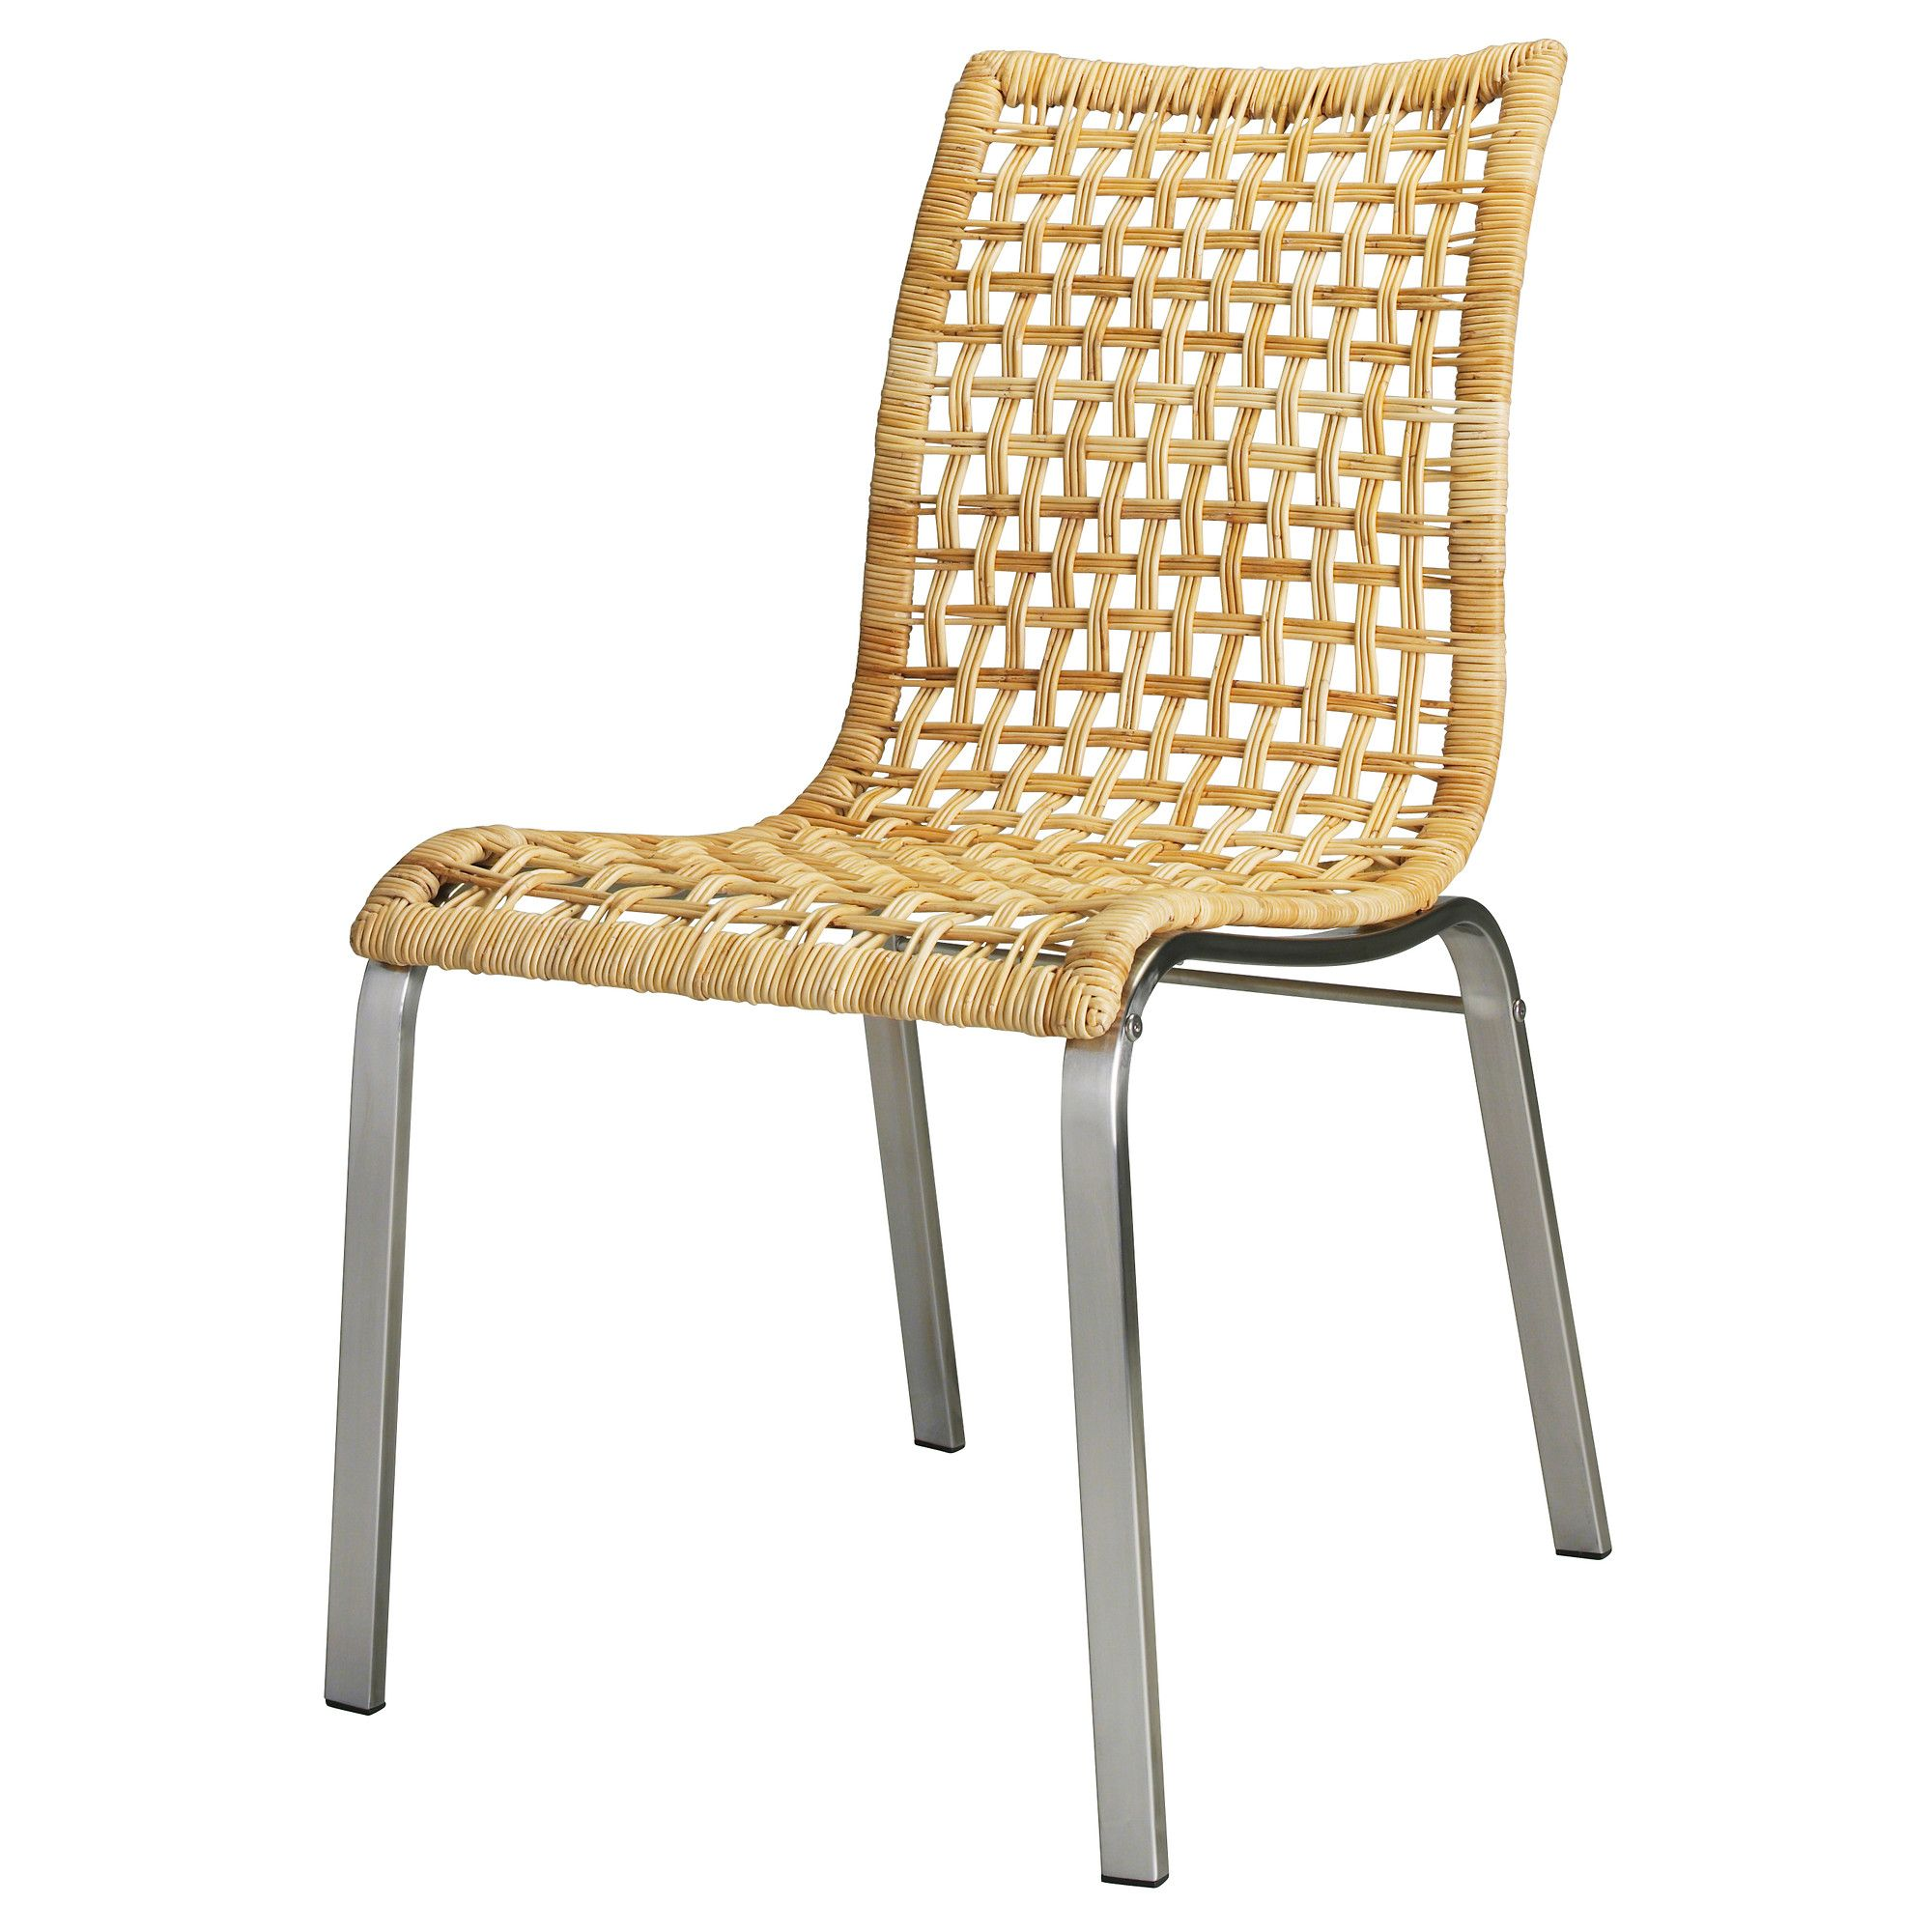 NANDOR Chair - IKEA | beach house hub - BAM hub competition ...